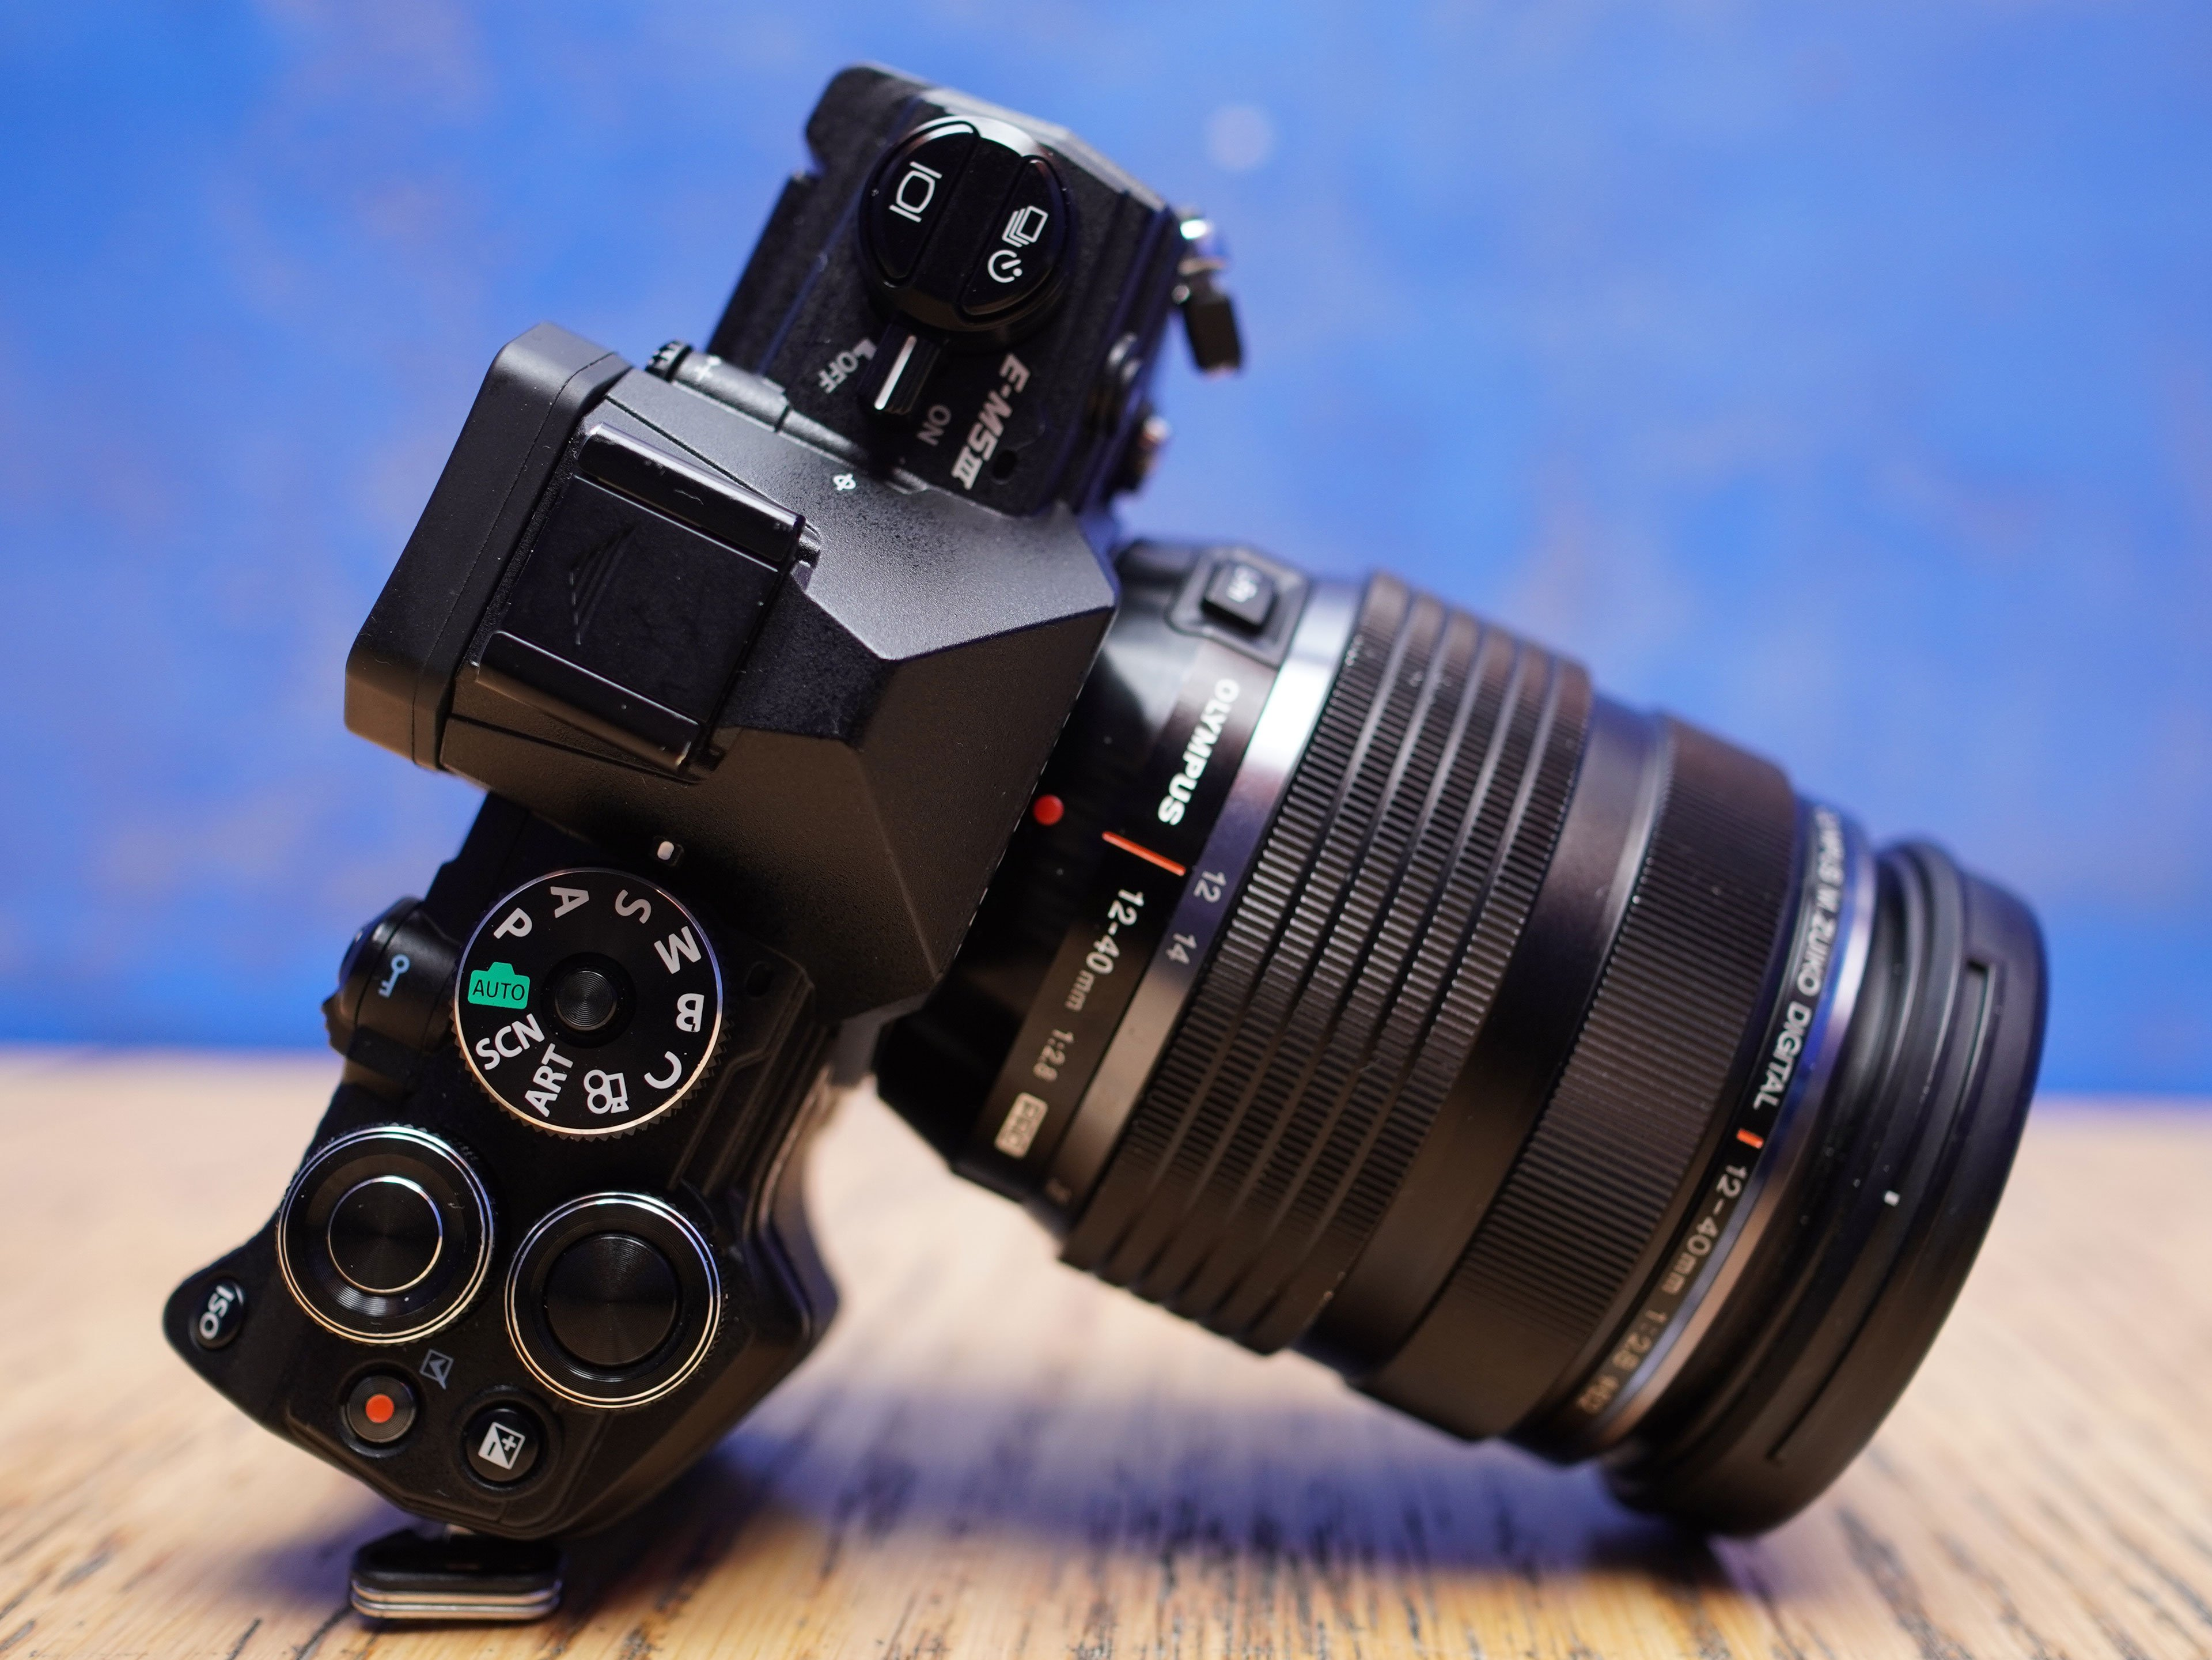 Olympus OMD EM5 III review so far - Cameralabs